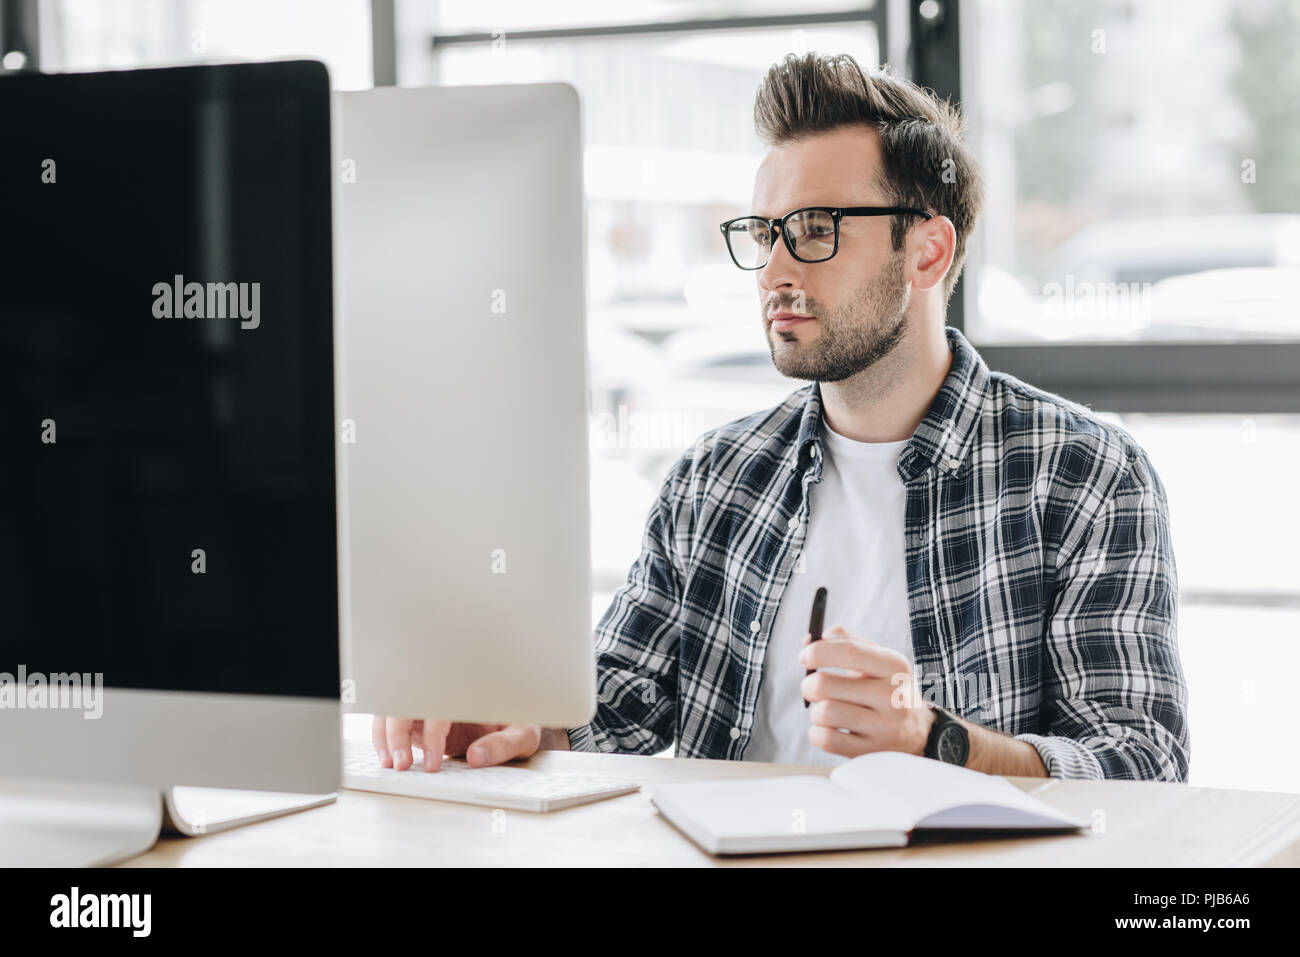 focused young man in eyeglasses working with desktop computer - Stock Image